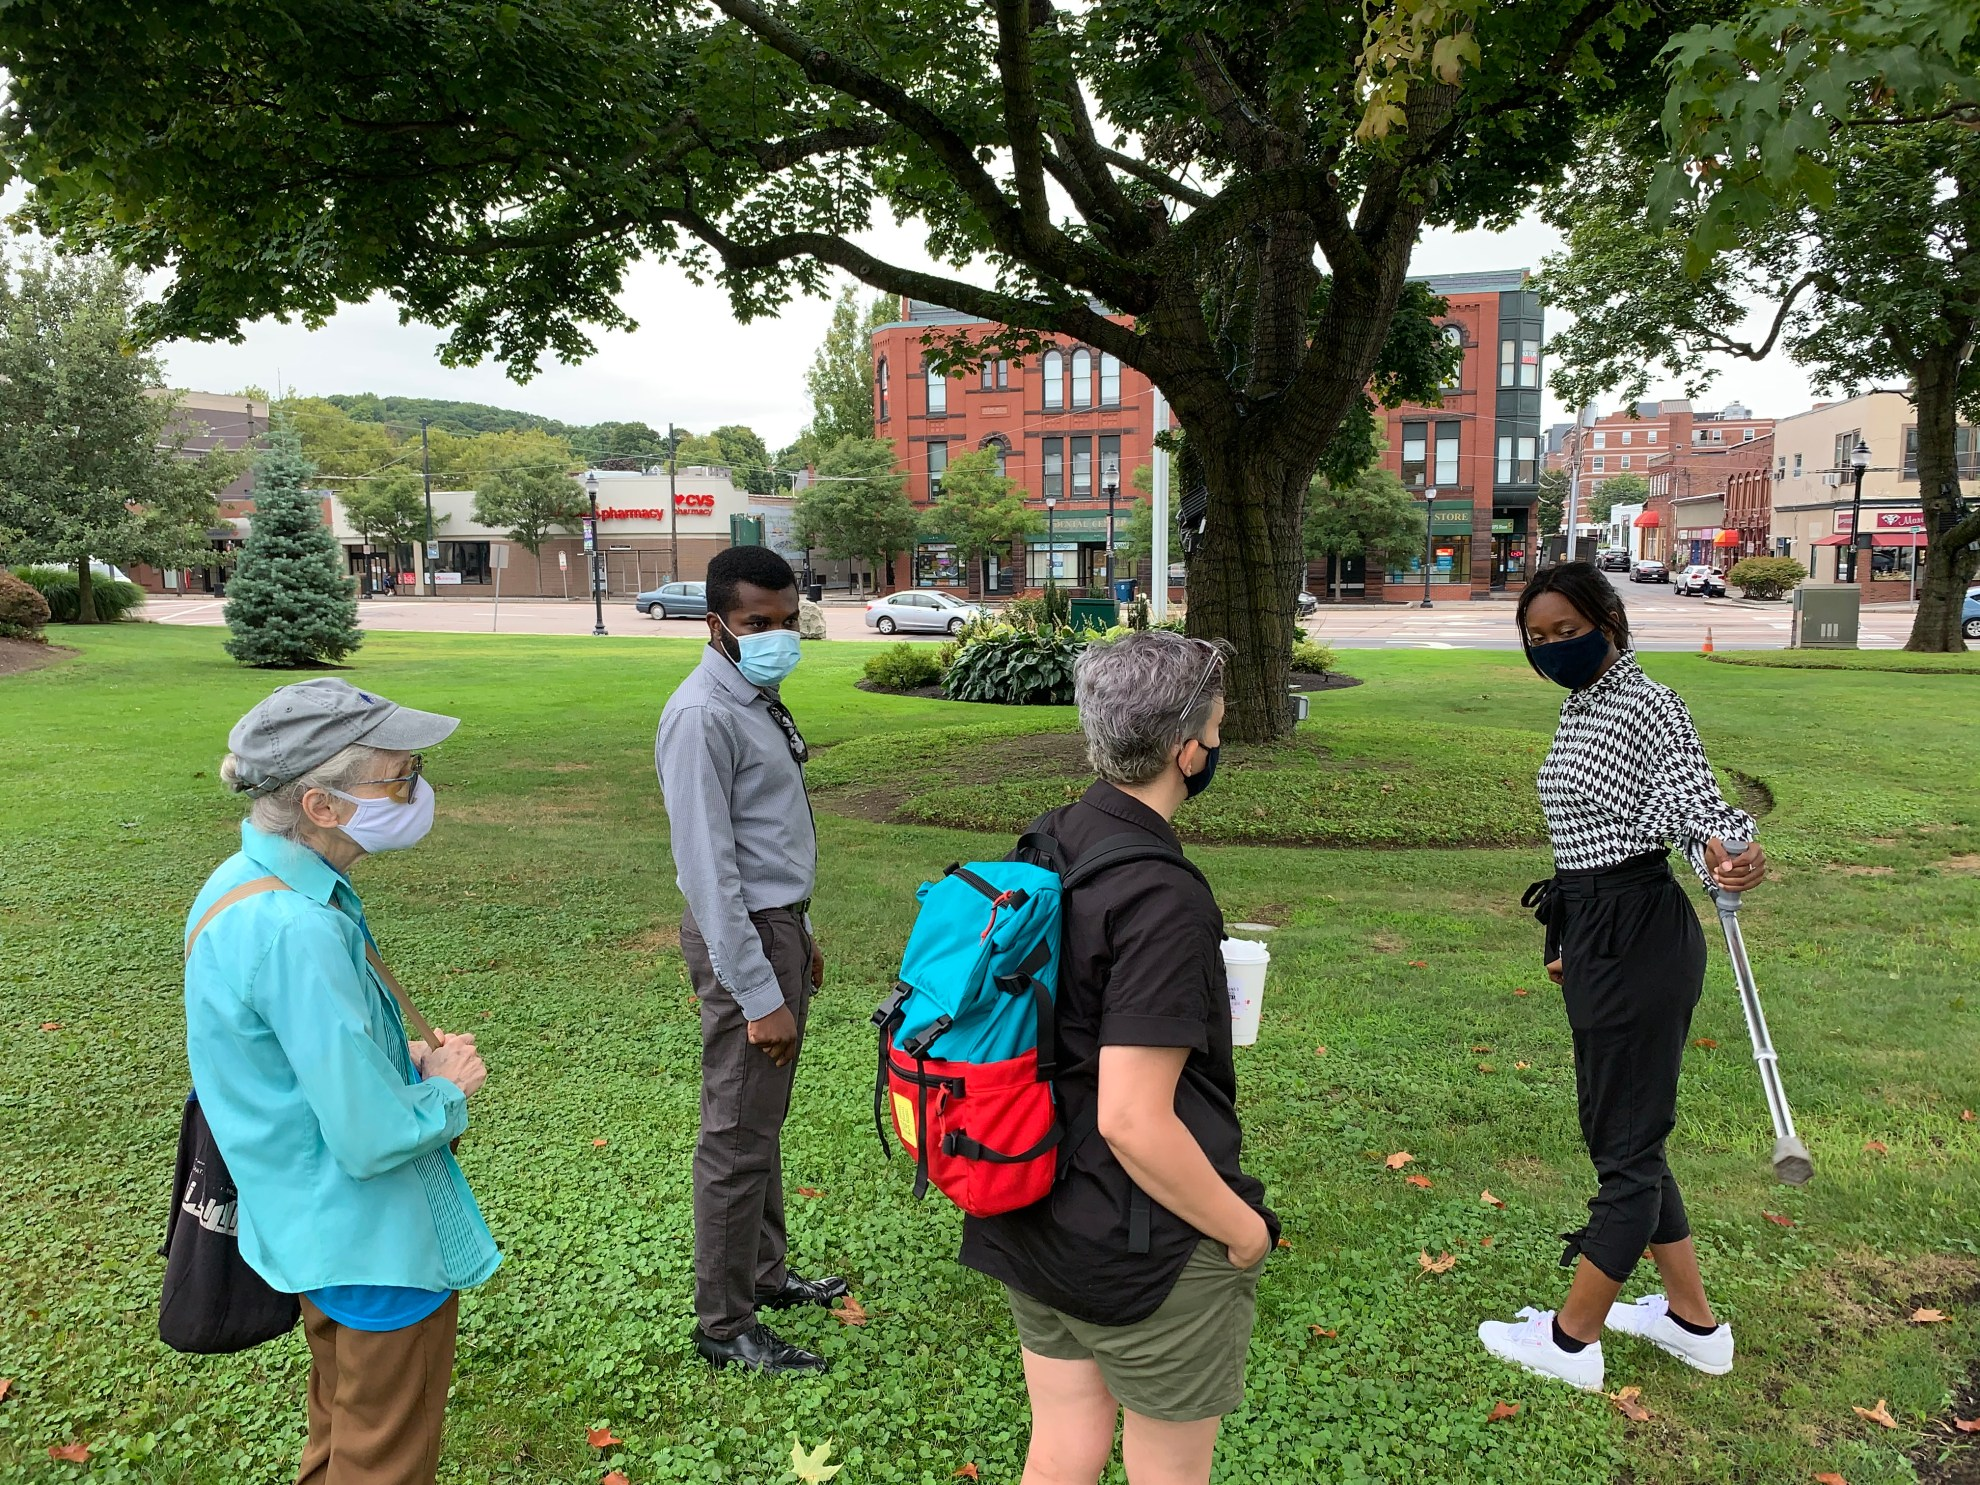 four people consult outdoors about the moving play route